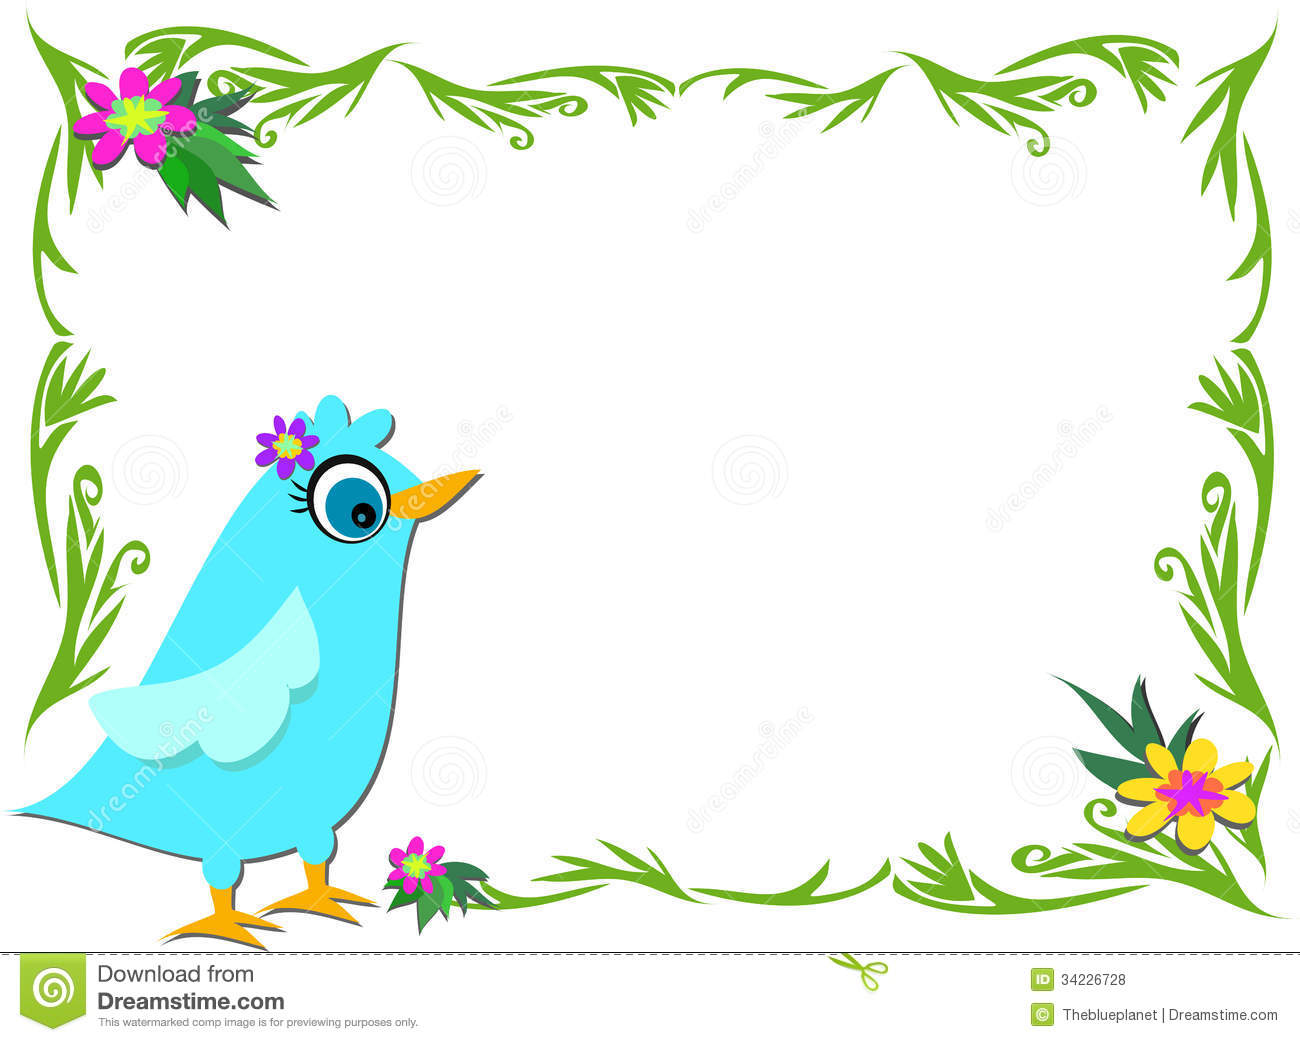 Plant And Flower Frame With Blue Bird Royalty Free Stock Photos ...